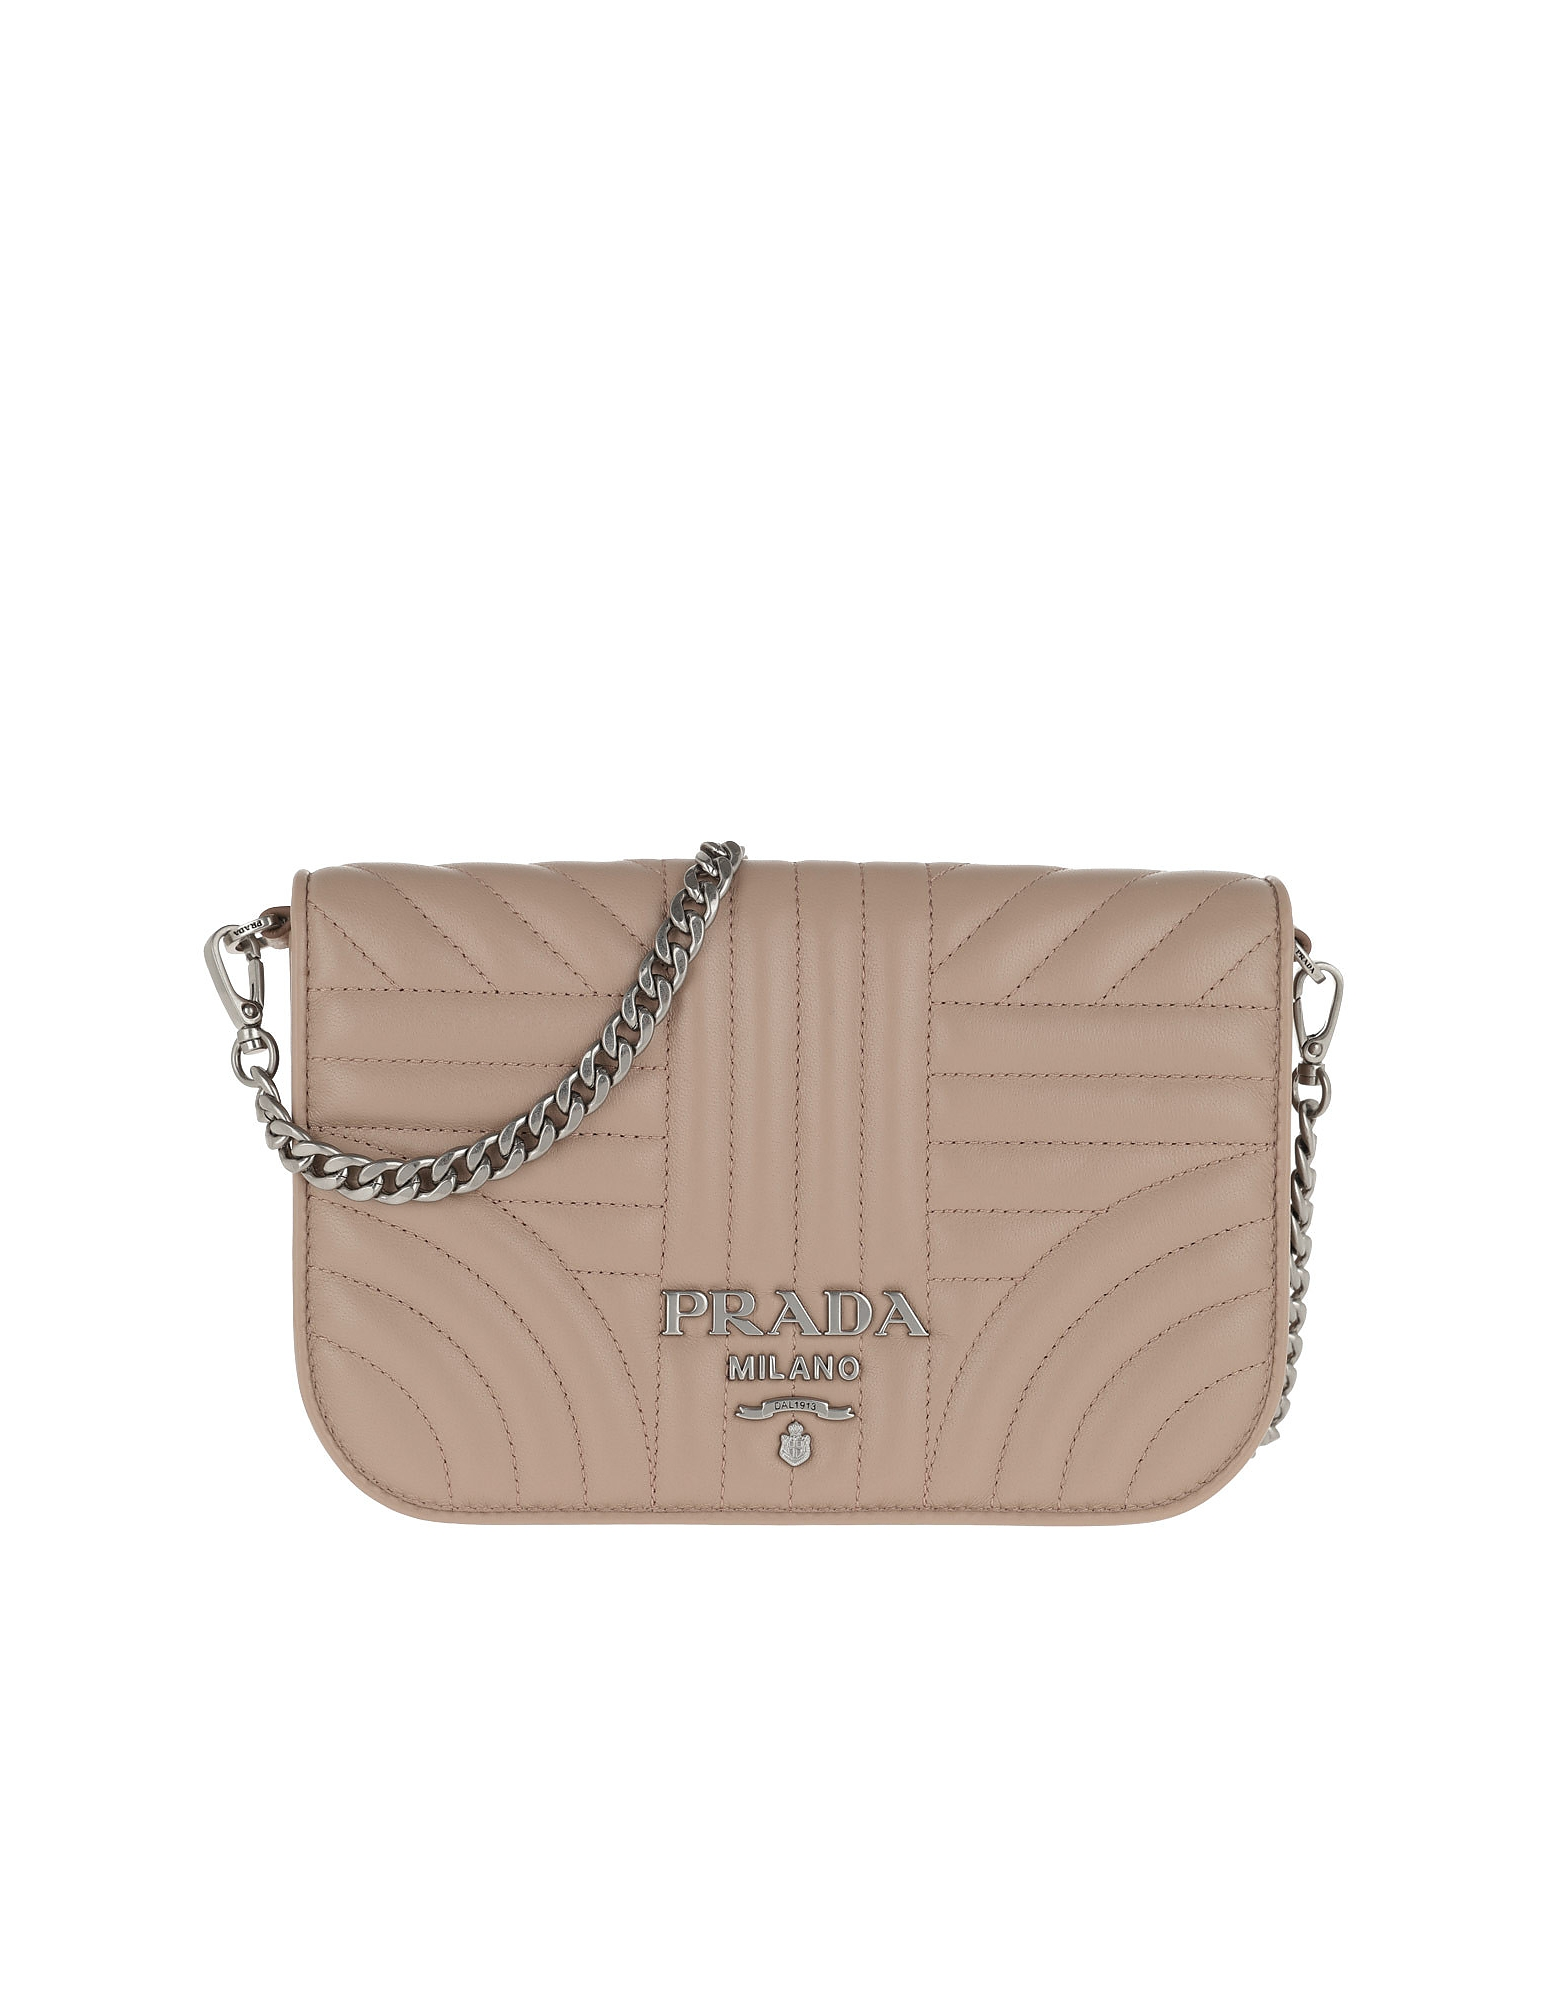 d93d3d9069176a Prada Quilted Diagramme Nappa Leather Bag Cipria In Beige ...